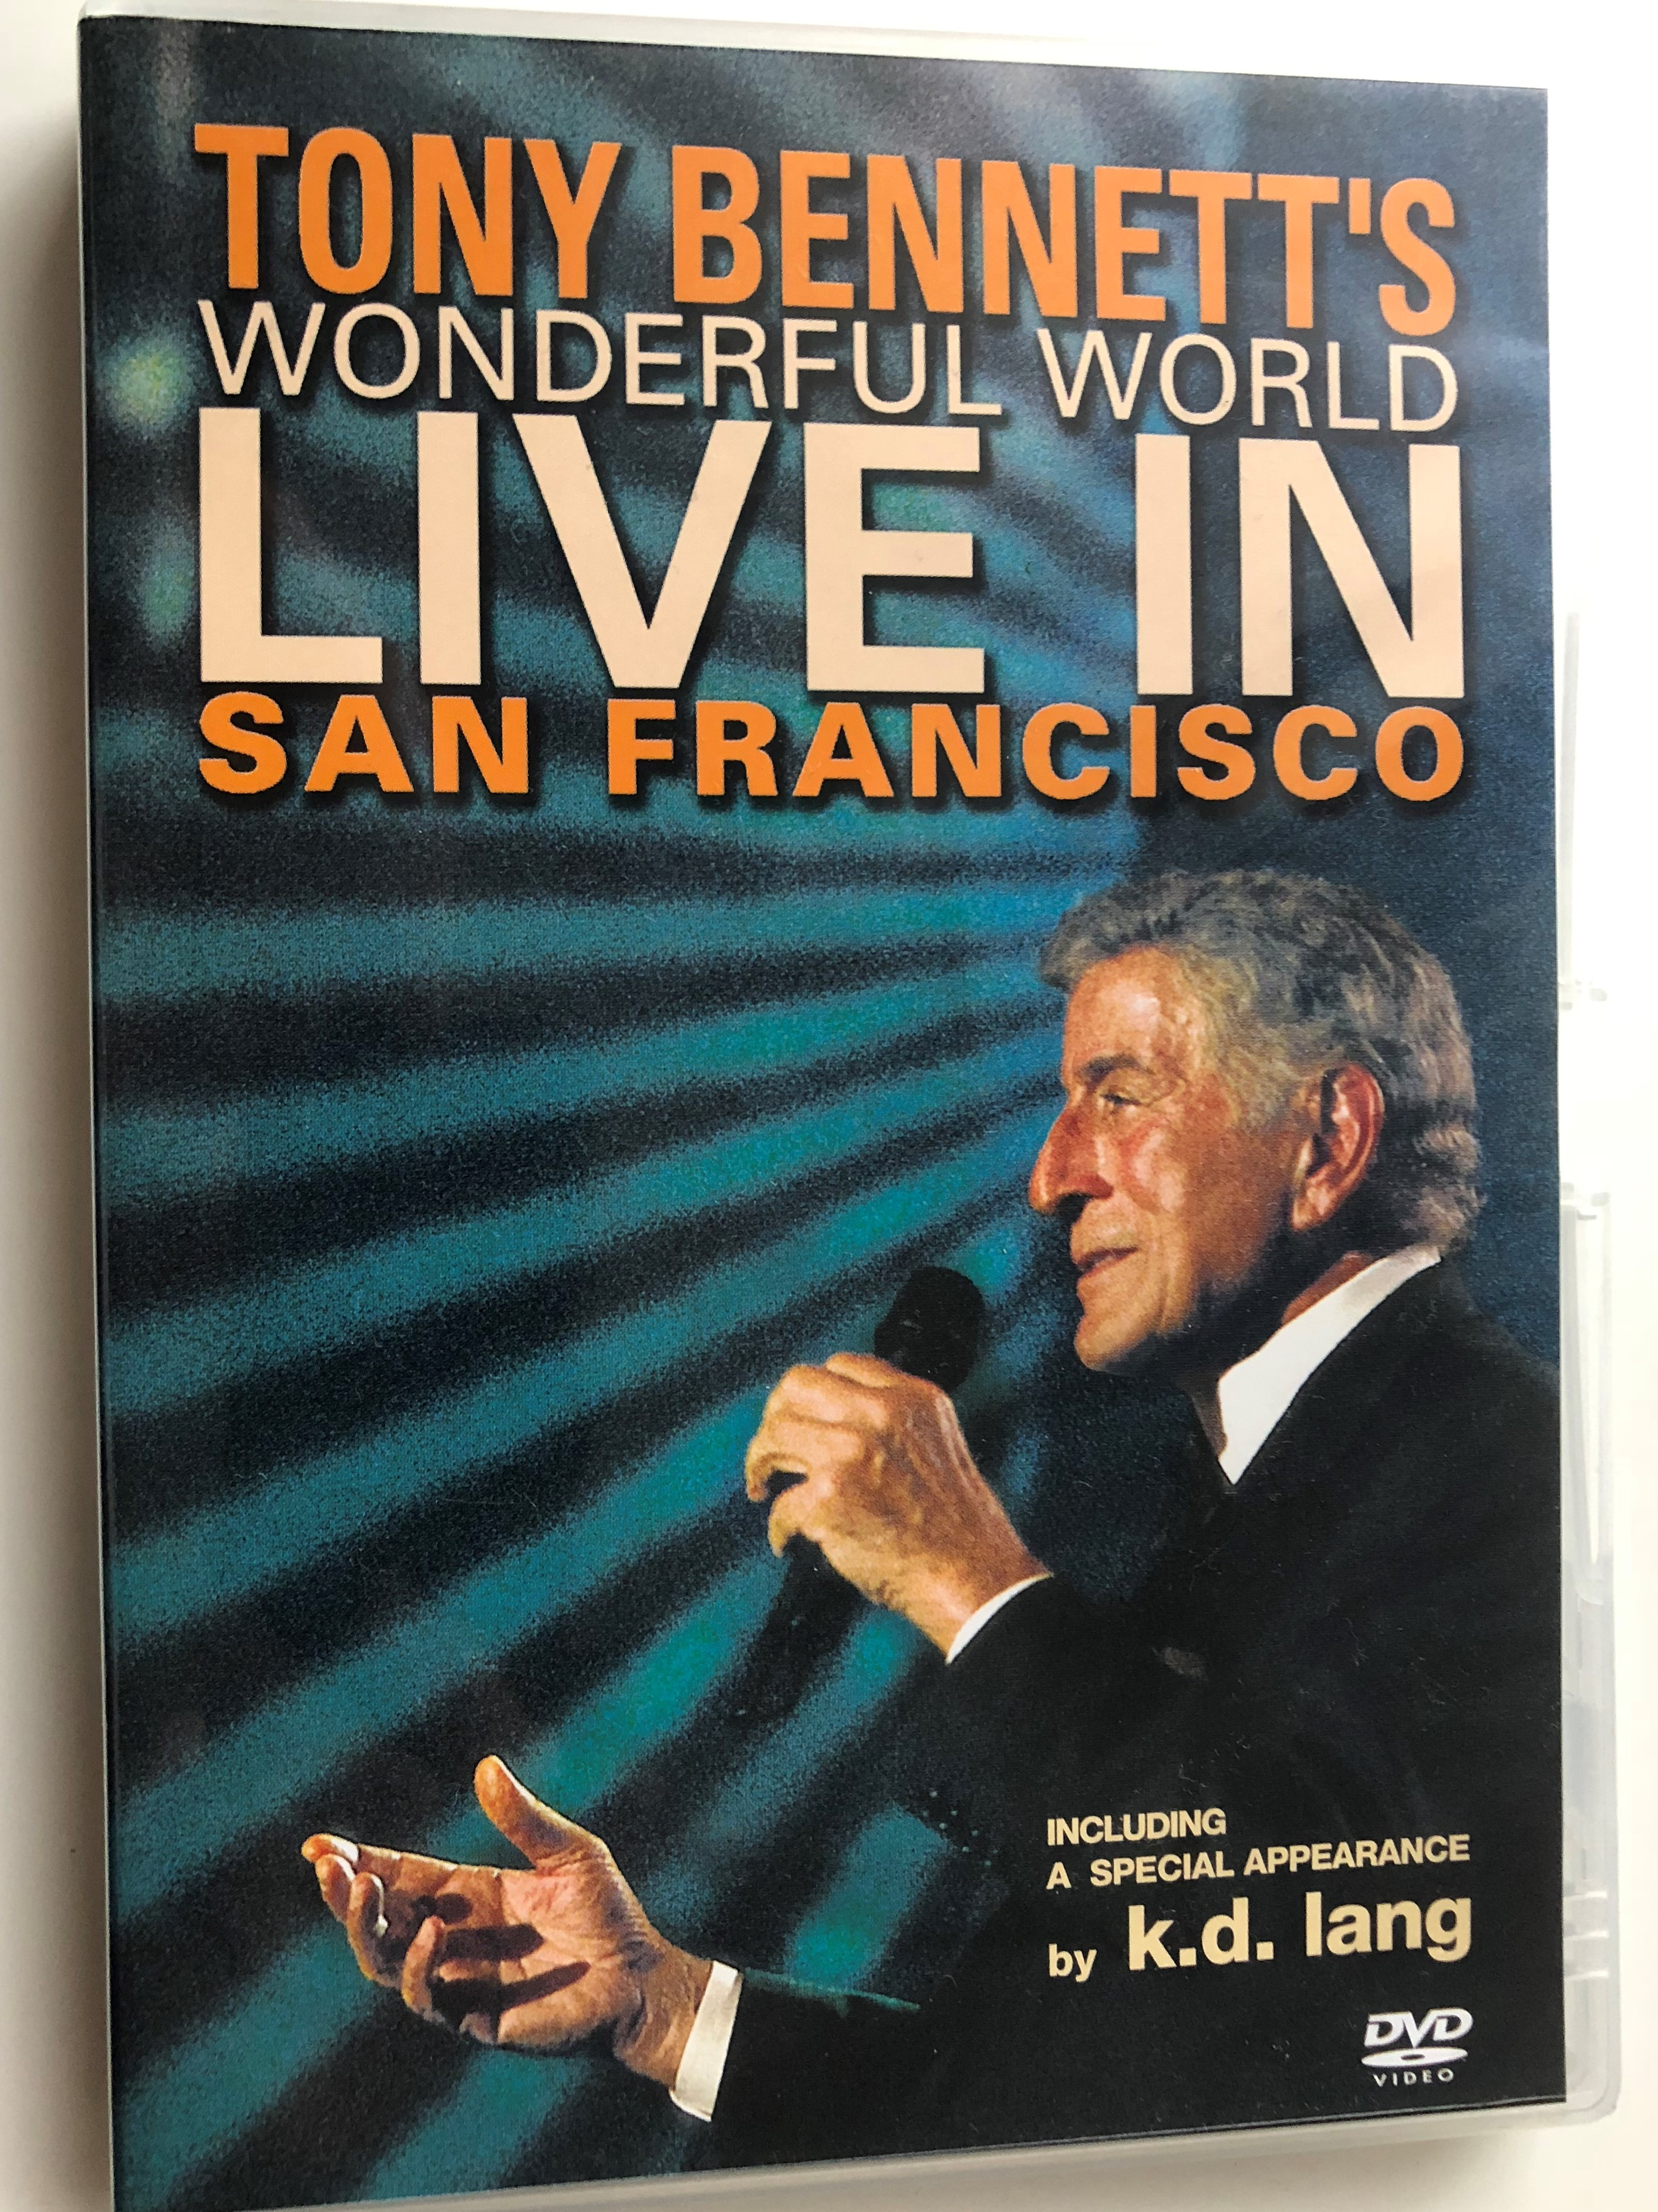 -tony-bennett-s-wonderful-world-dvd-2002-live-in-san-francisco-special-appearance-by-k.-d.-lang-1-.jpg